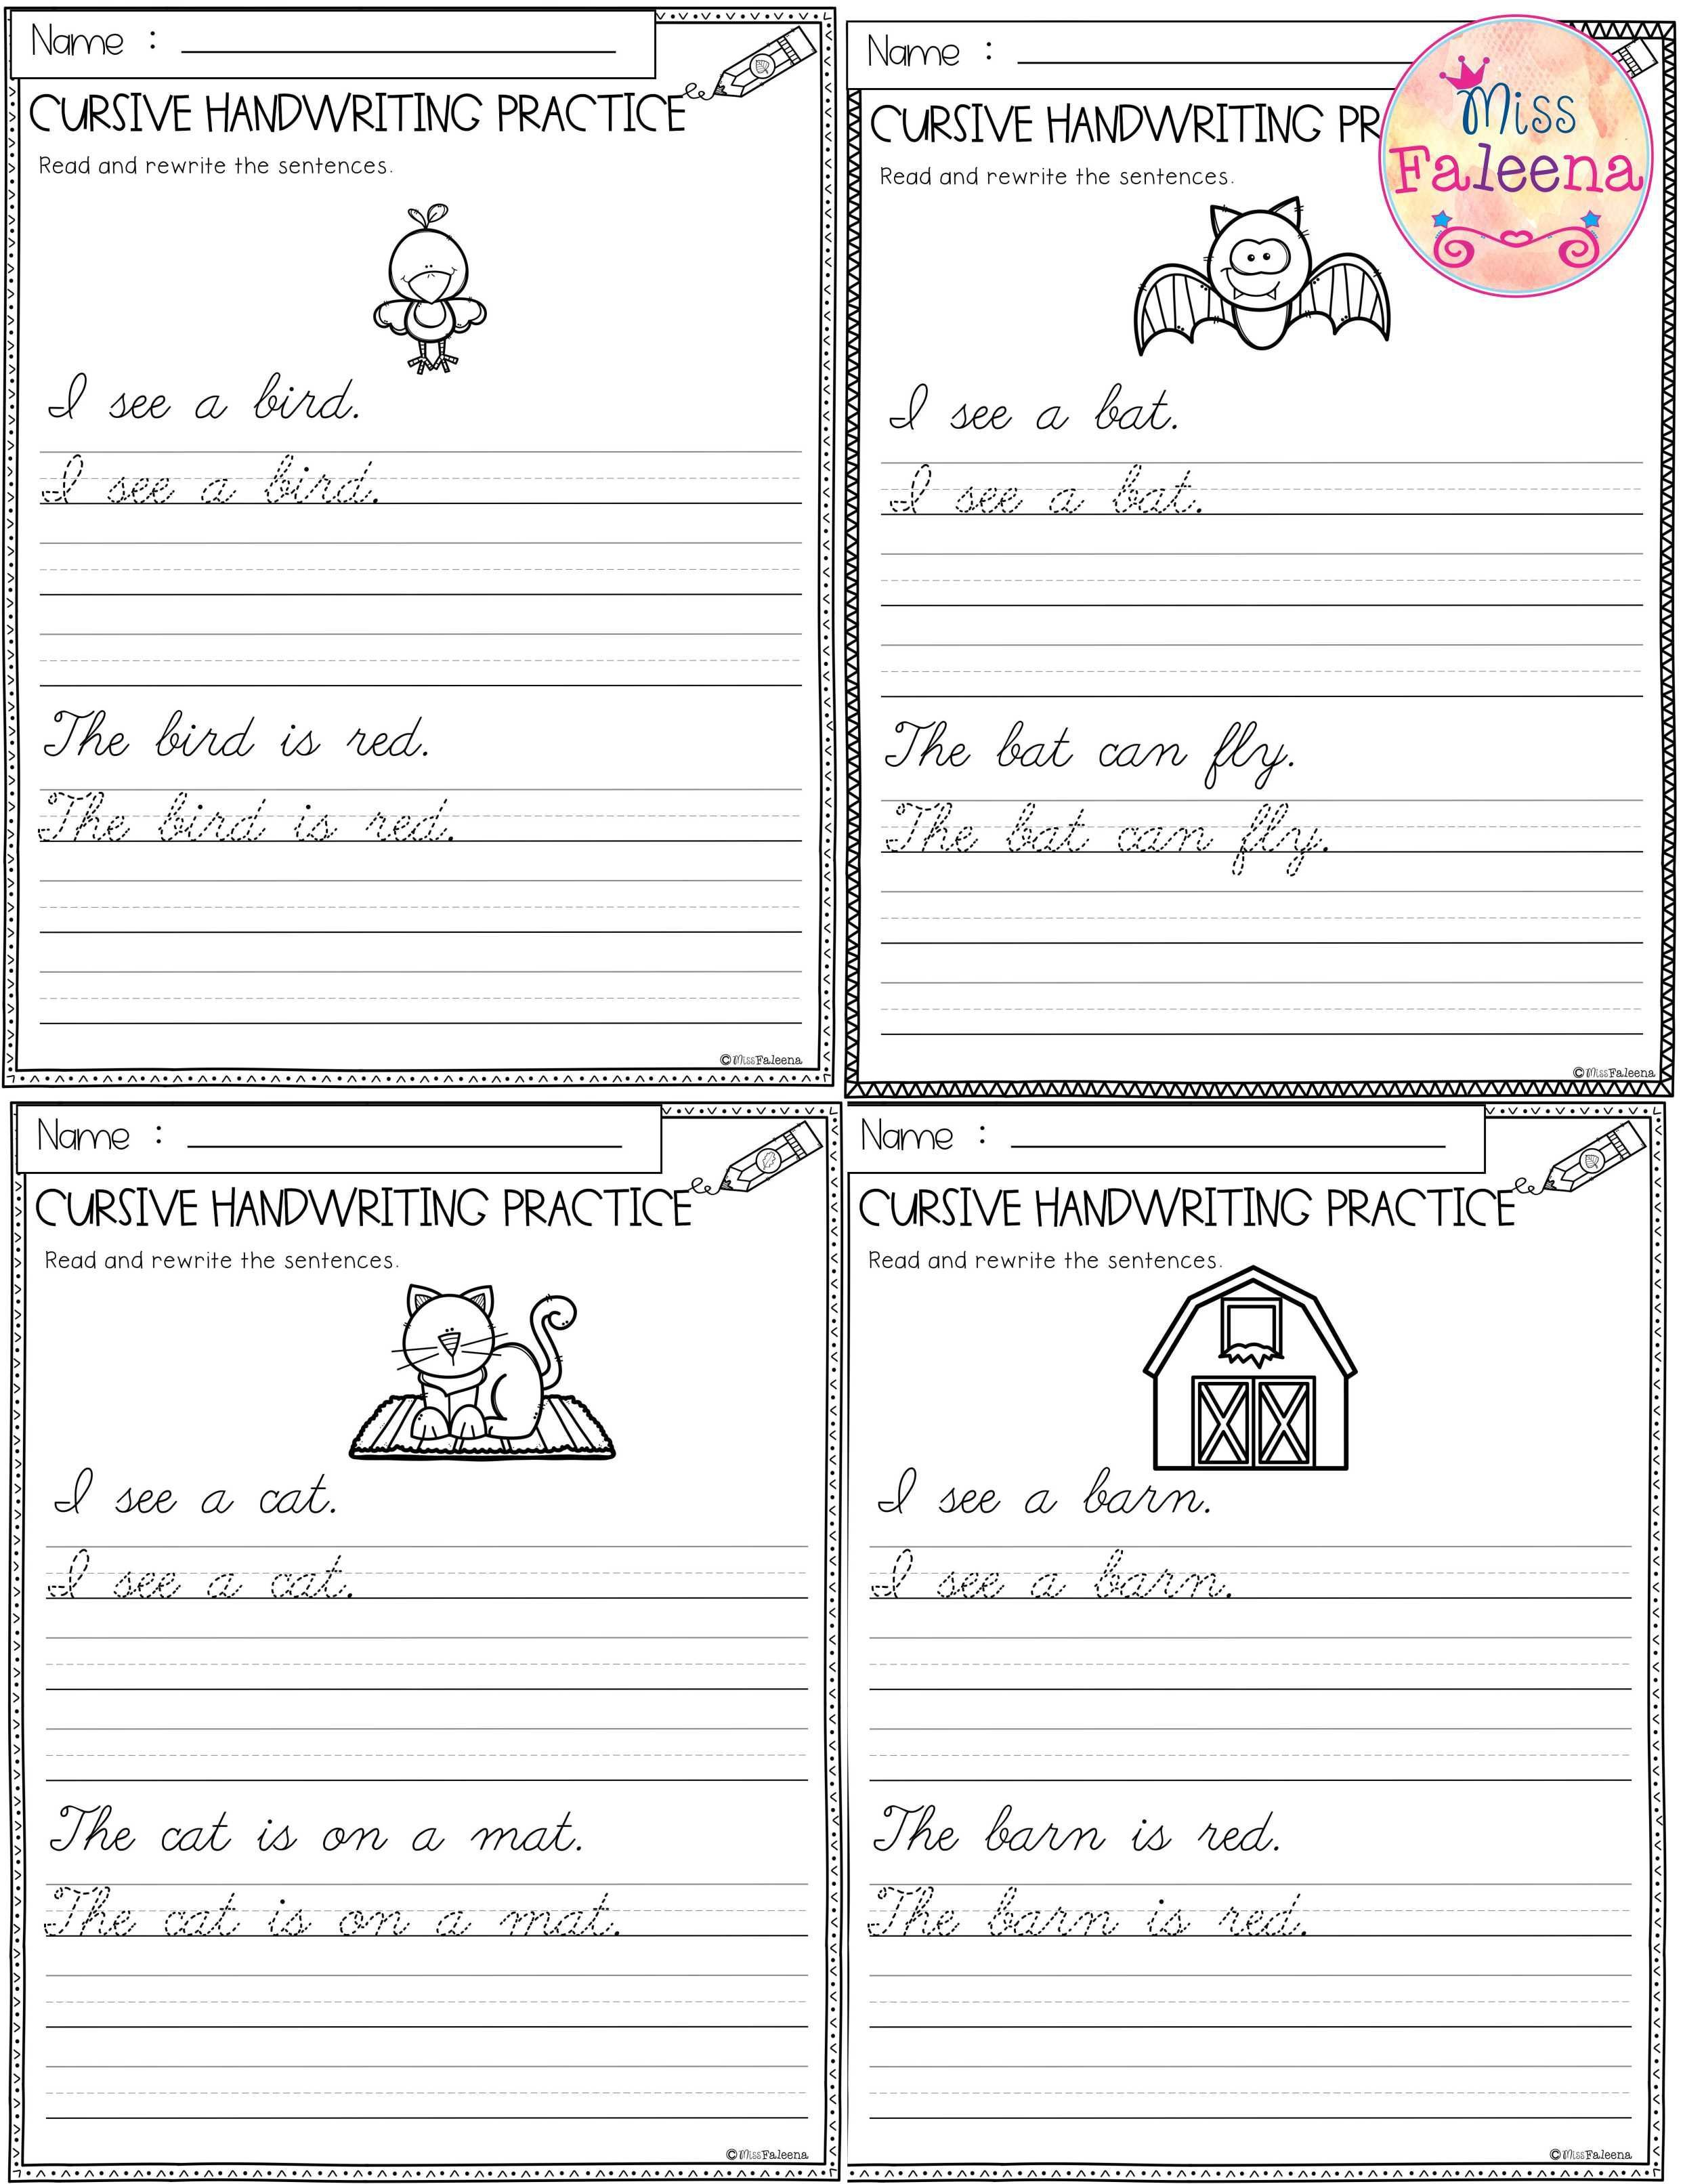 Free Cursive Handwriting This Product Has 5 Pages Of